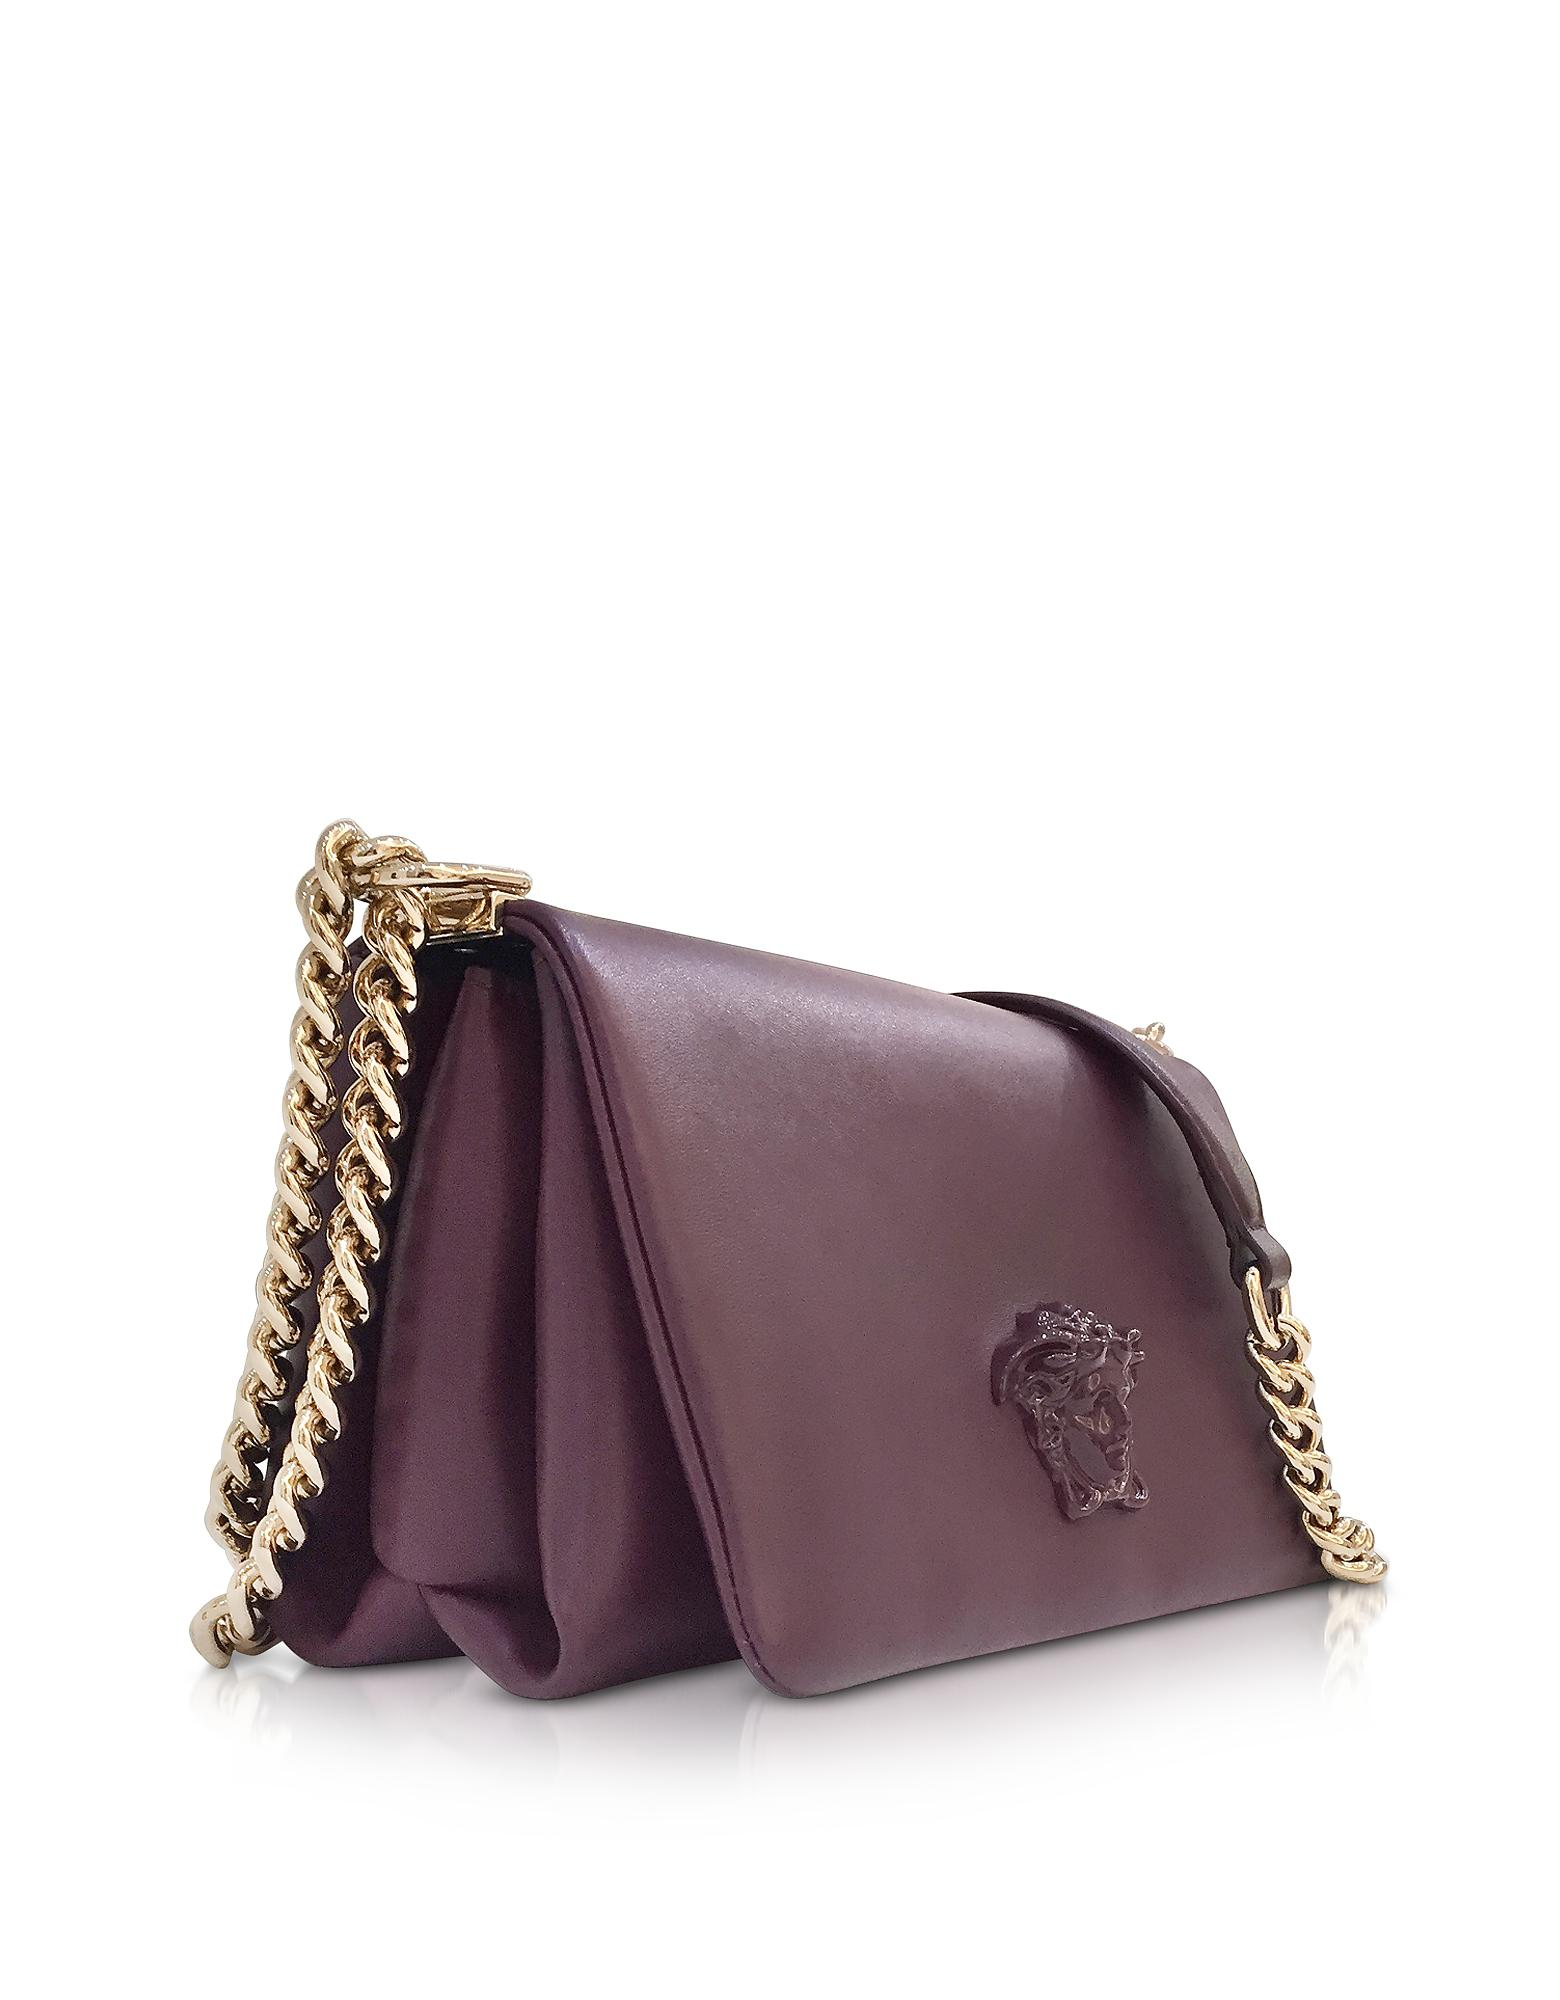 Lyst - Versace Palazzo Nappa Leather Shoulder Bag W medusa in Purple ab3aa36163849